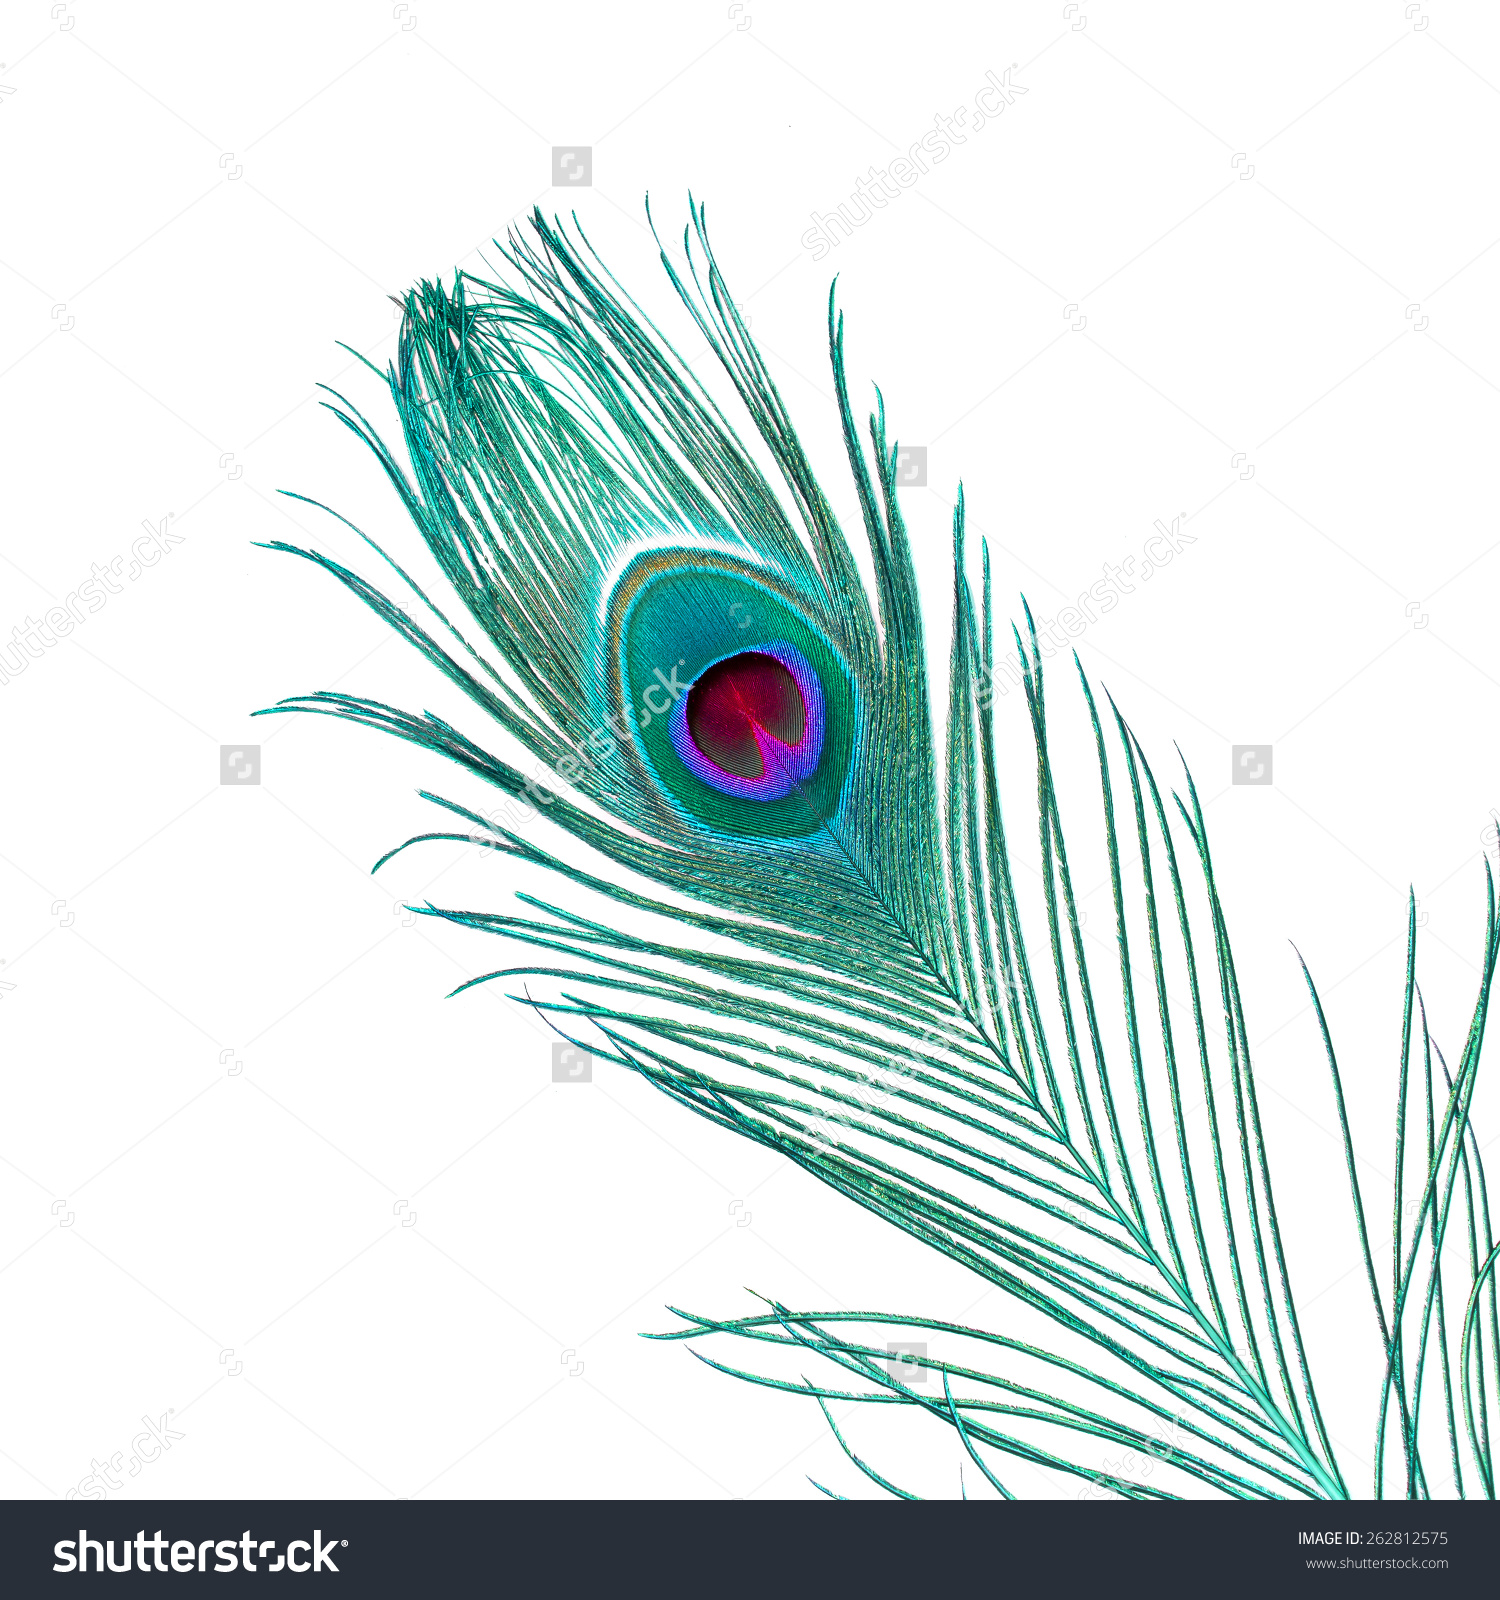 Indian Peafowl clipart #3, Download drawings